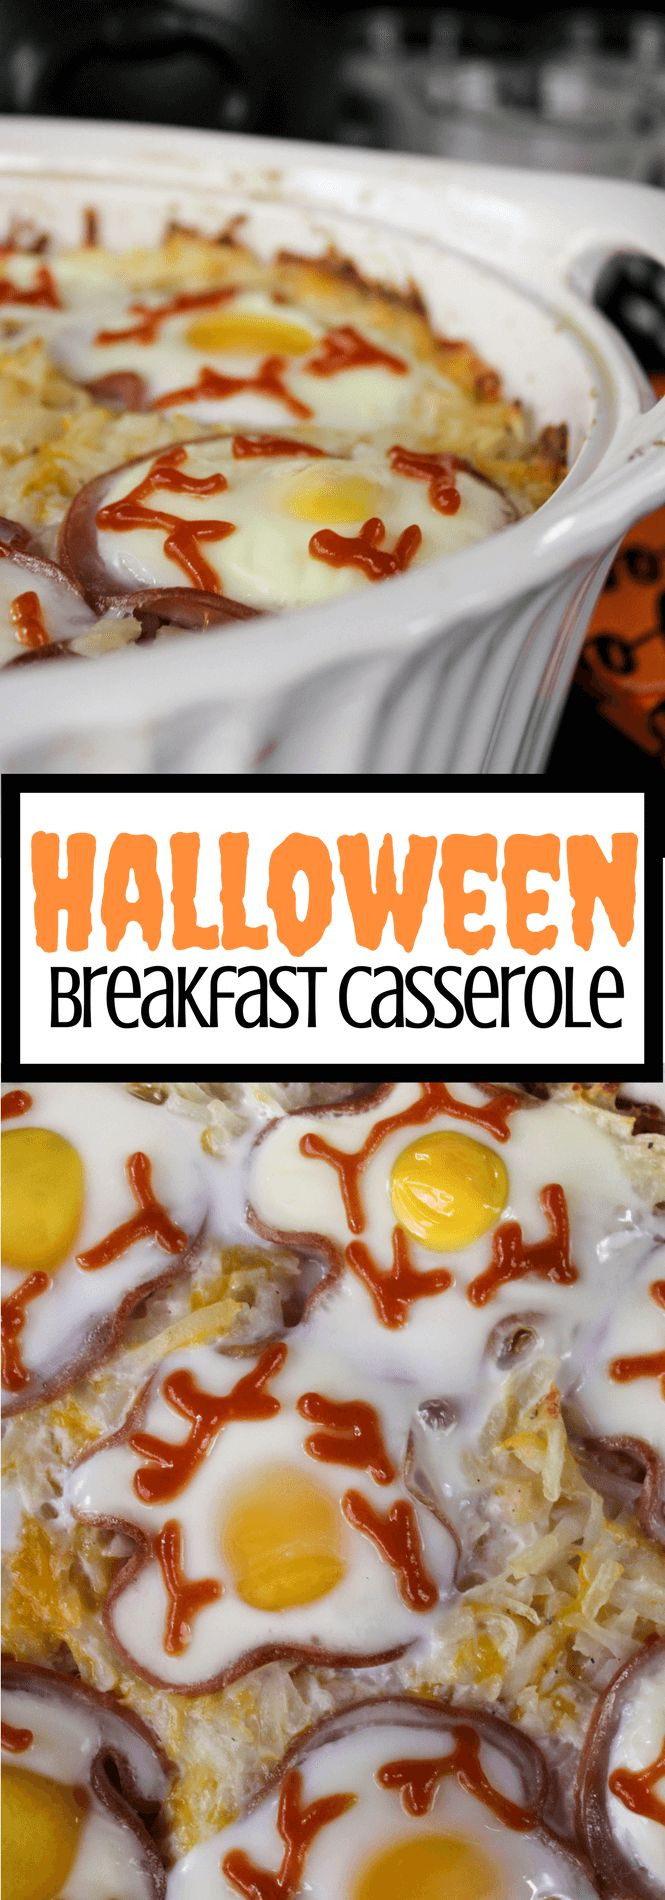 Halloween Breakfast Recipes  Best 25 Halloween breakfast ideas on Pinterest